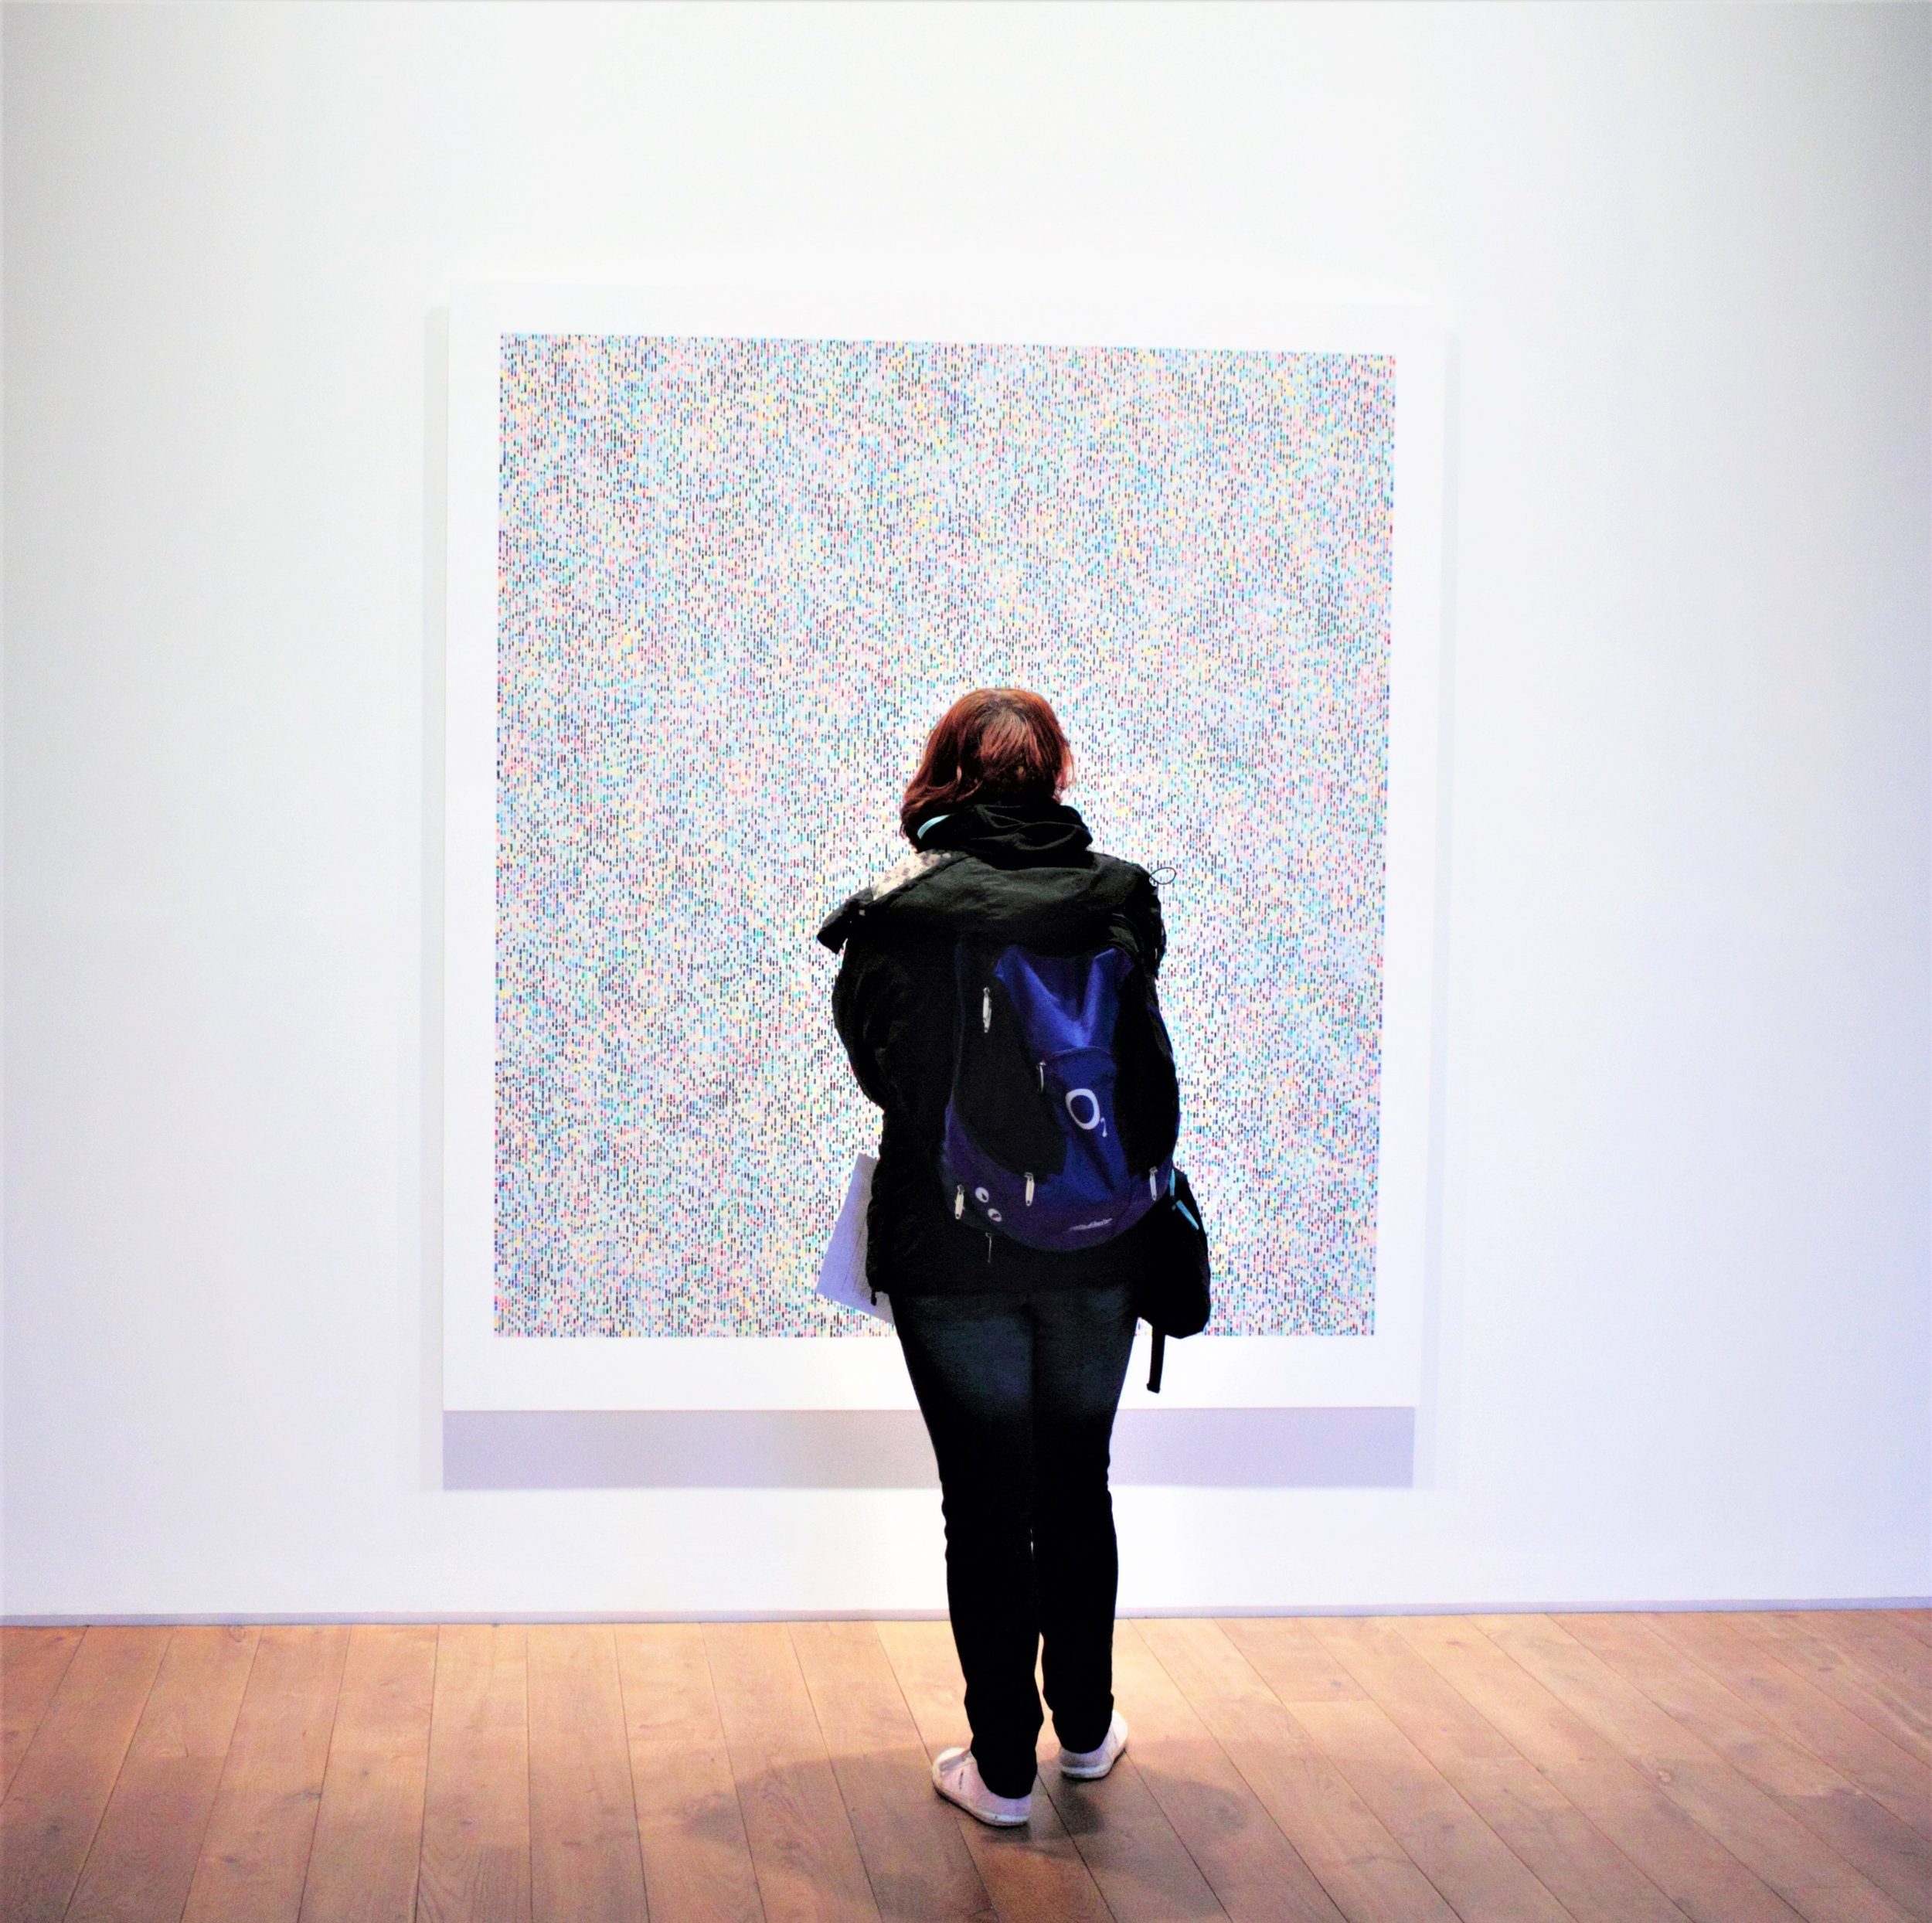 Step 2  OUR ART ADVISORS, ARTISTS AND GALLERIES USE THEIR ART WORLD ACCESS AND EXPERTISE TO FIND ART THAT MEETS YOUR NEEDS